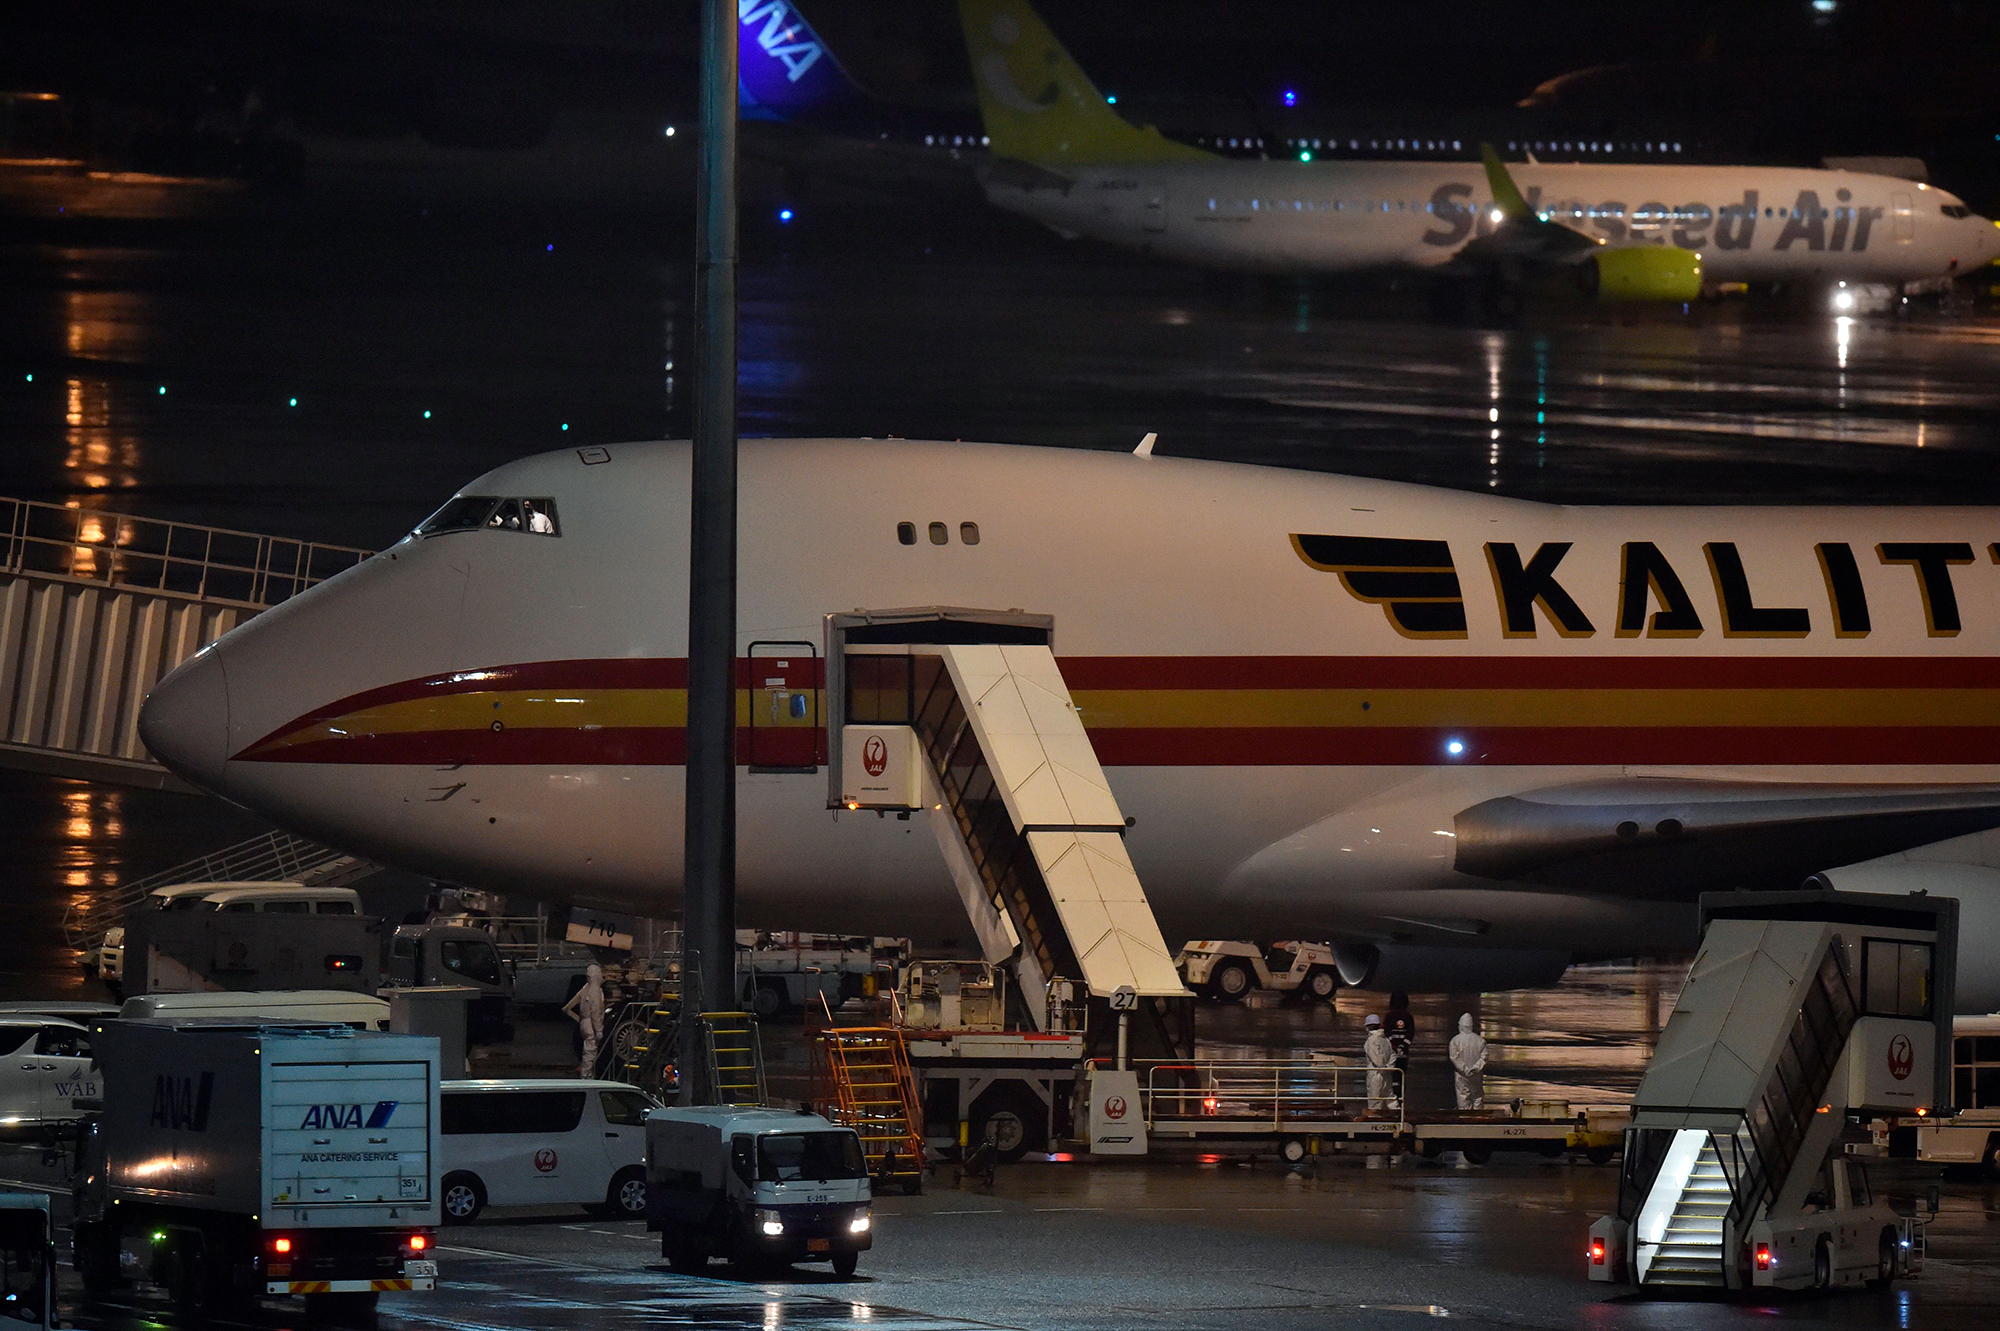 Jumbo jets arrived to evacuate US citizens from the Diamond Princess cruise ship, with people quarantined onboard due to fears of the new COVID-19 coronavirus, at the Haneda airport in Tokyo on February 16.